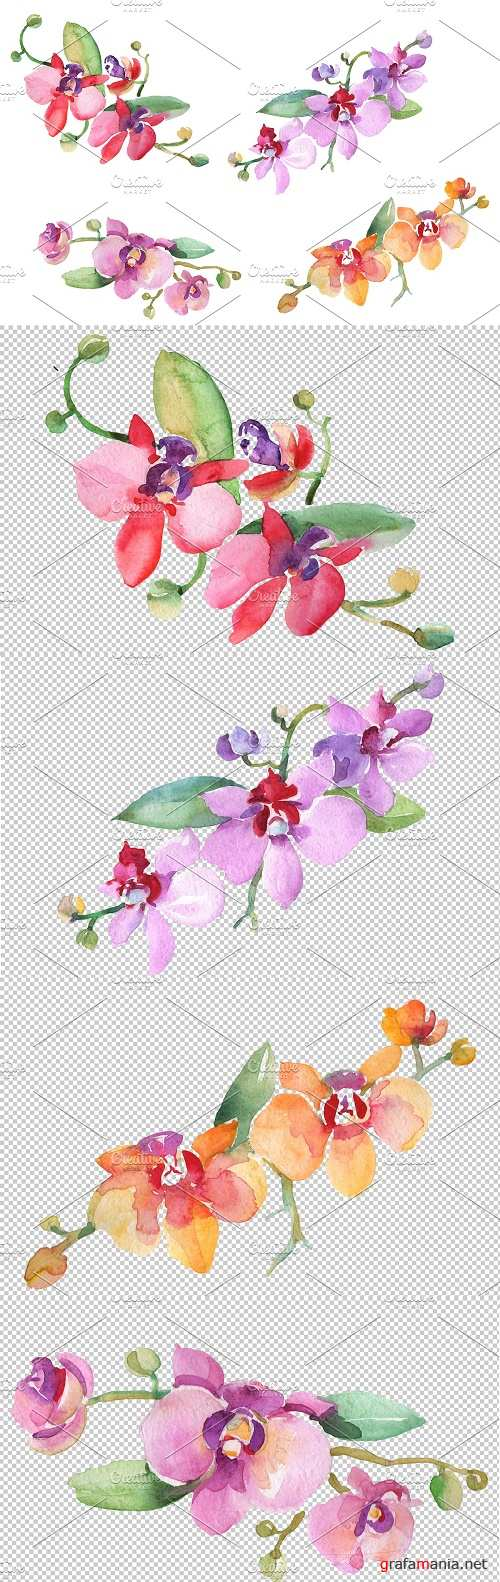 Branch with orchids Watercolor png - 3616010